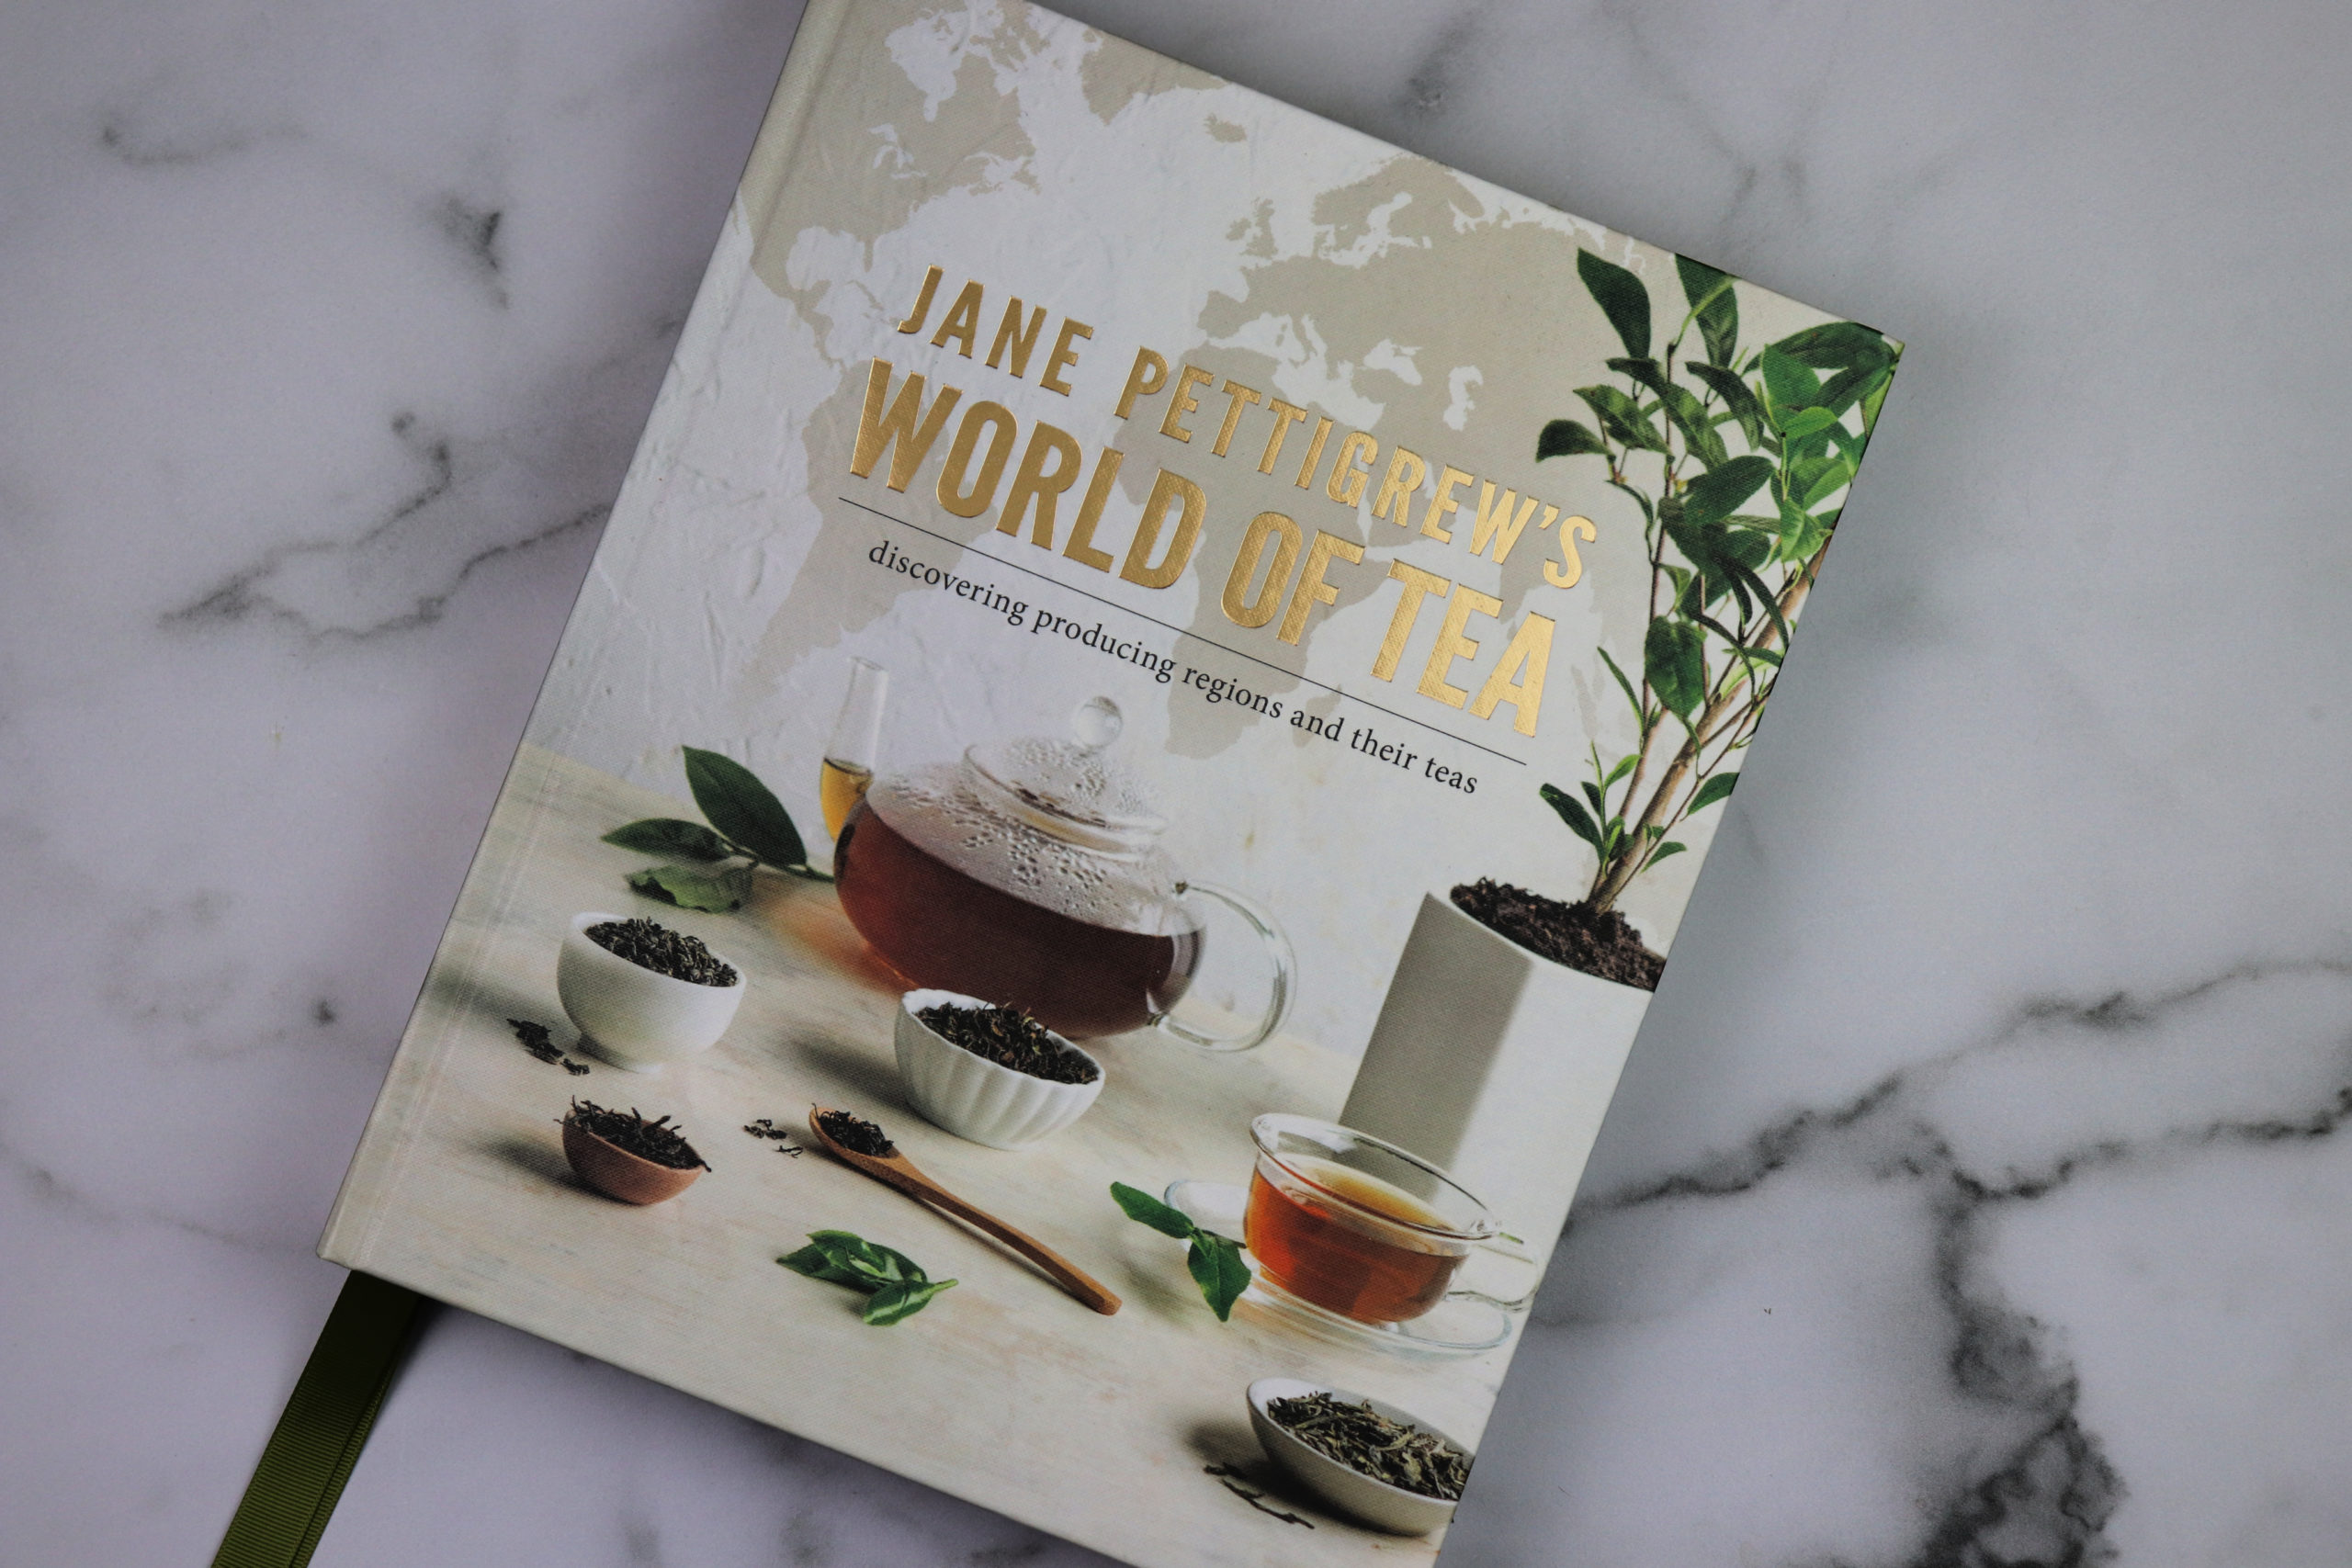 World of Tea by Jane Pettigrew